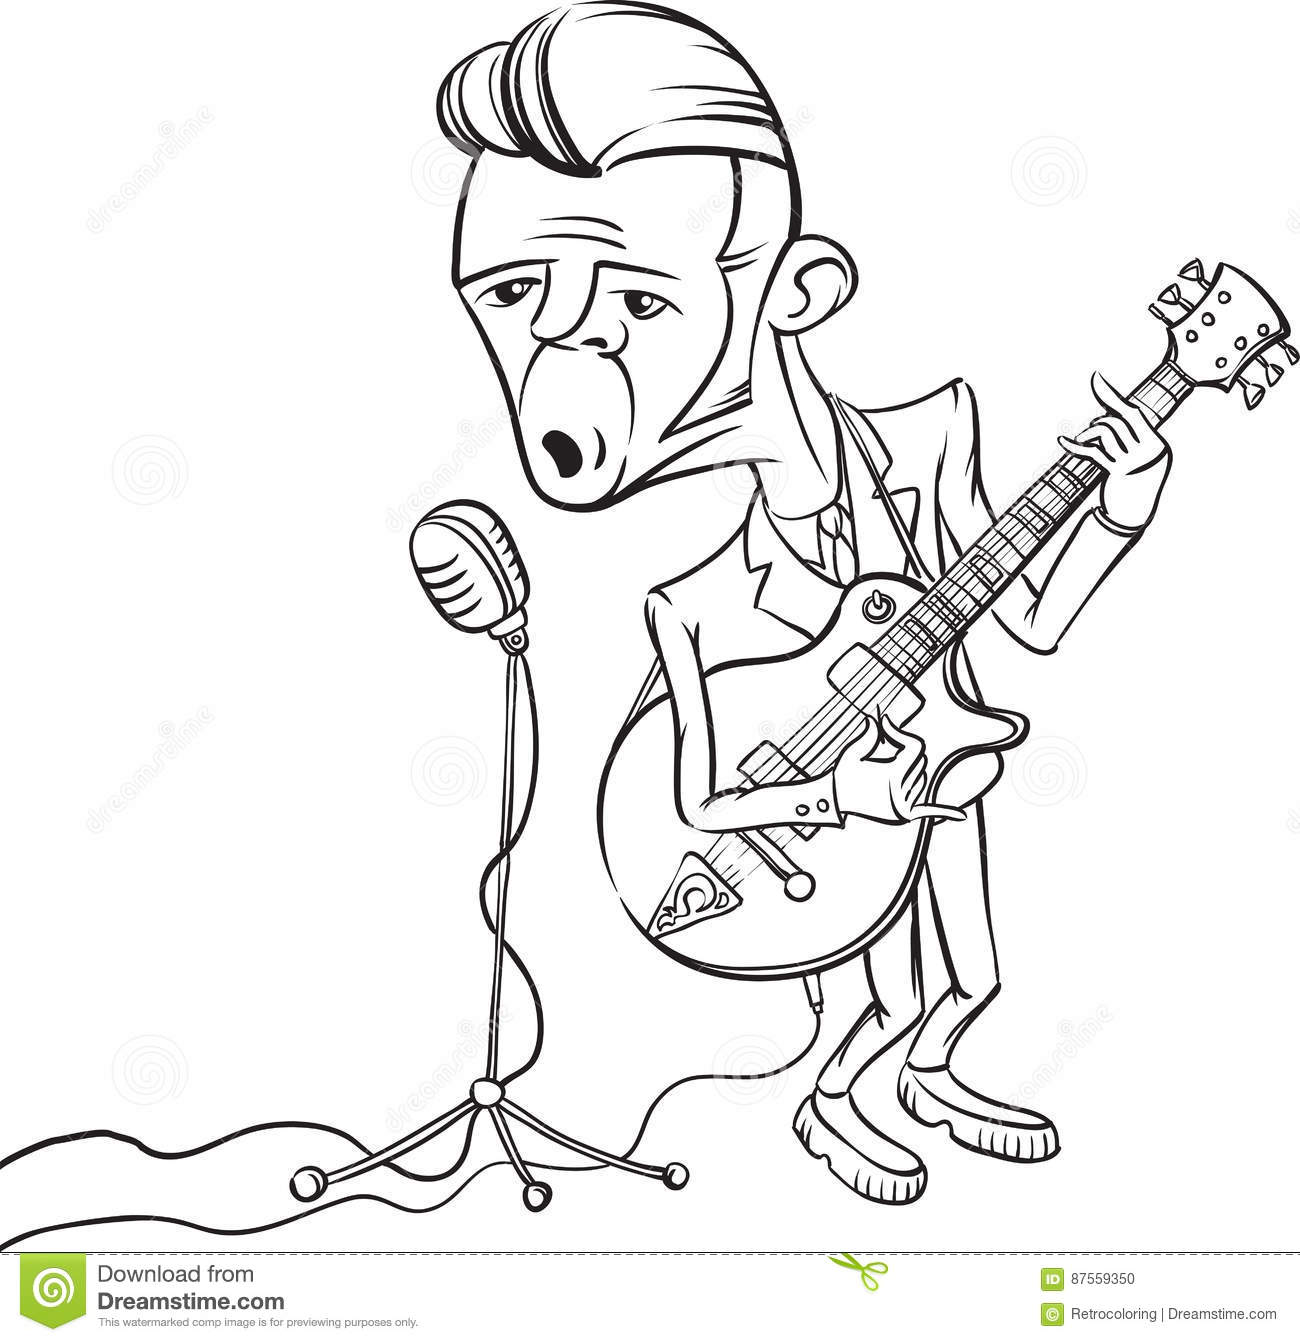 Dibujo De Whiteboard Guitarrista Del Rock And Roll Que